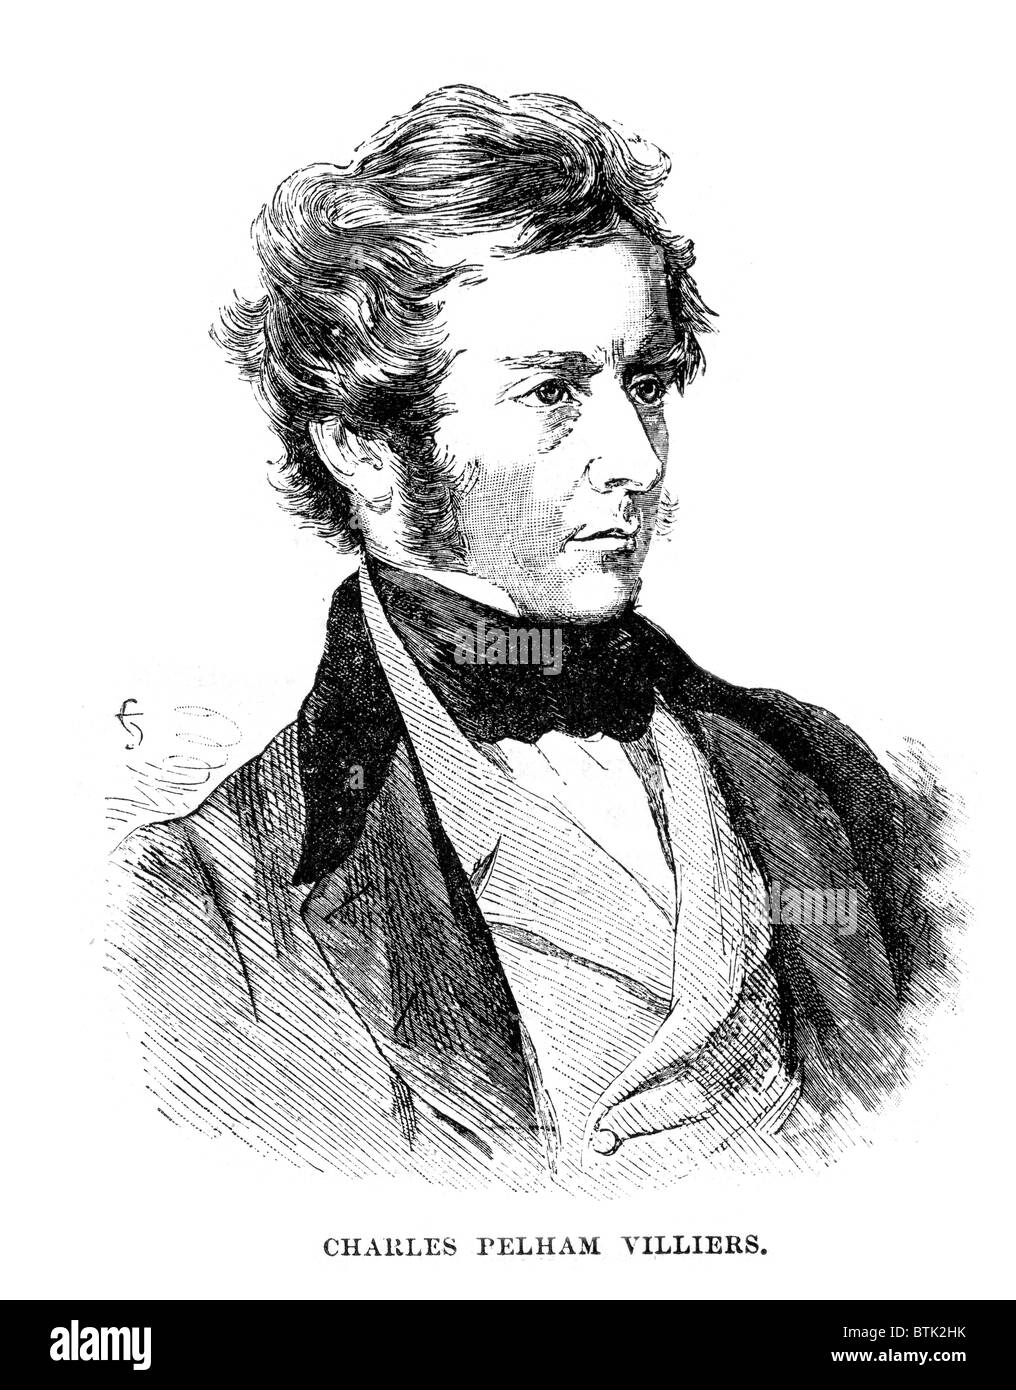 Charles Pelham Villiers a British lawyer and politician who sat in the House of Commons from 1835 to 1898 the longest - Stock Image